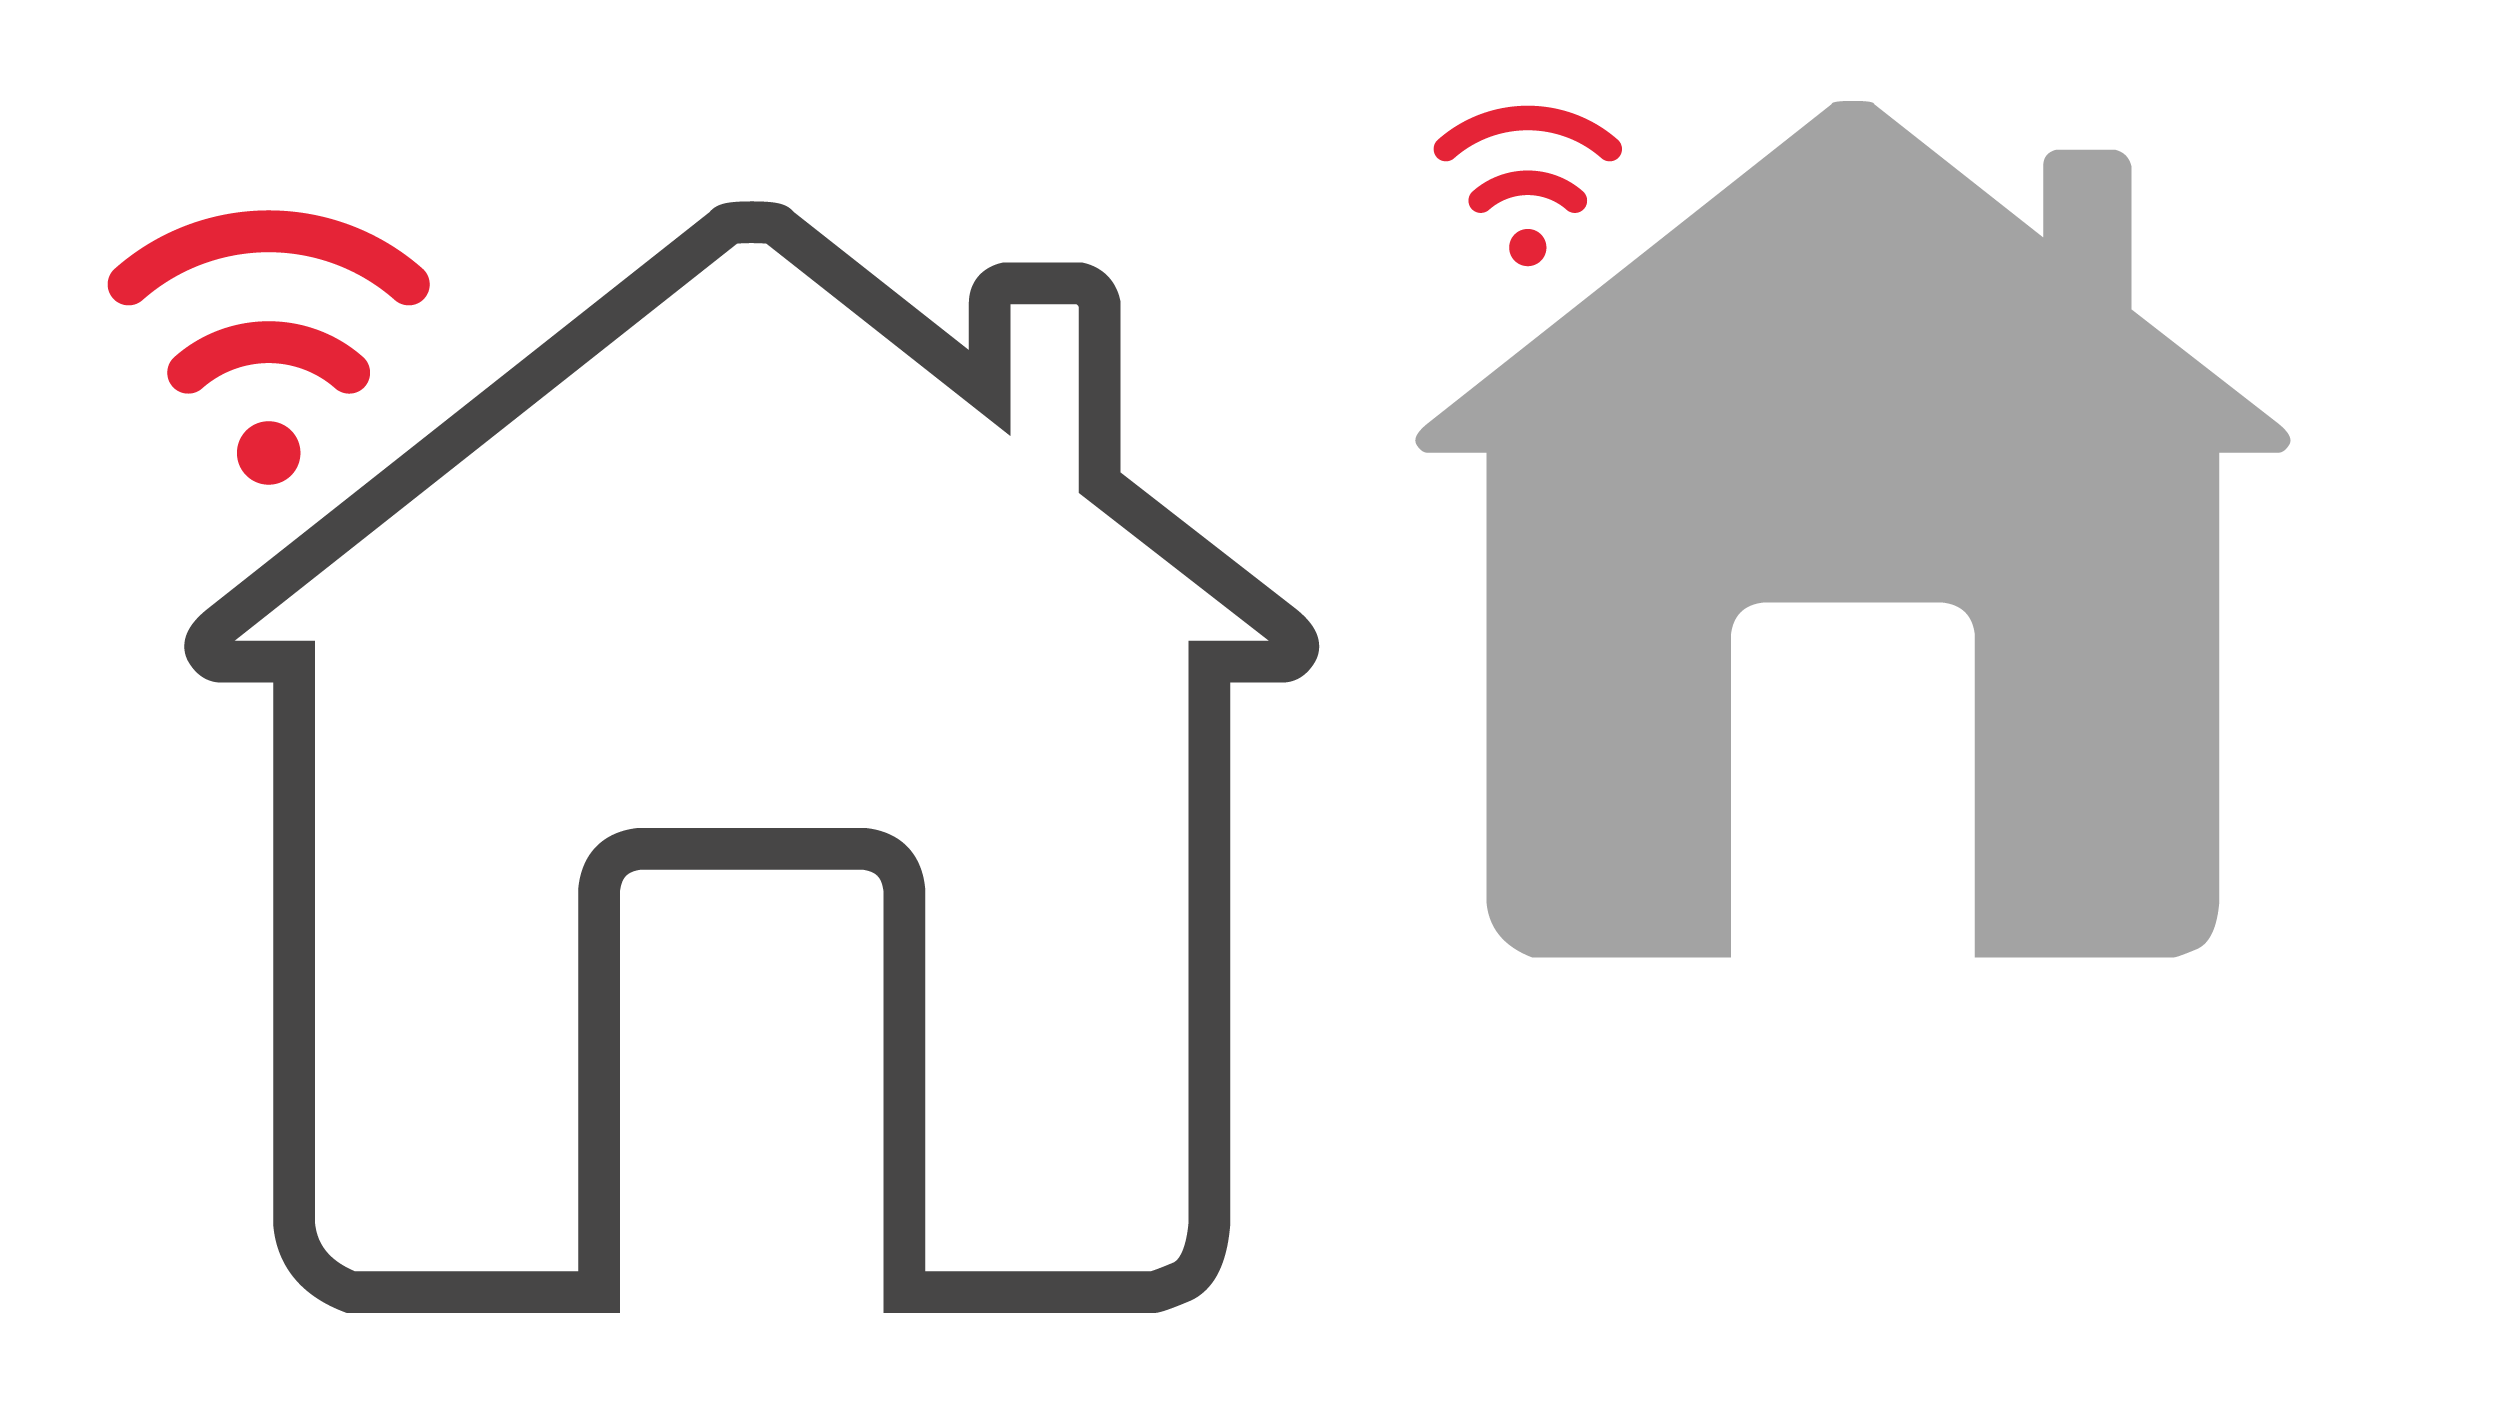 Two routers in two different houses sharing the same Wi-Fi channel